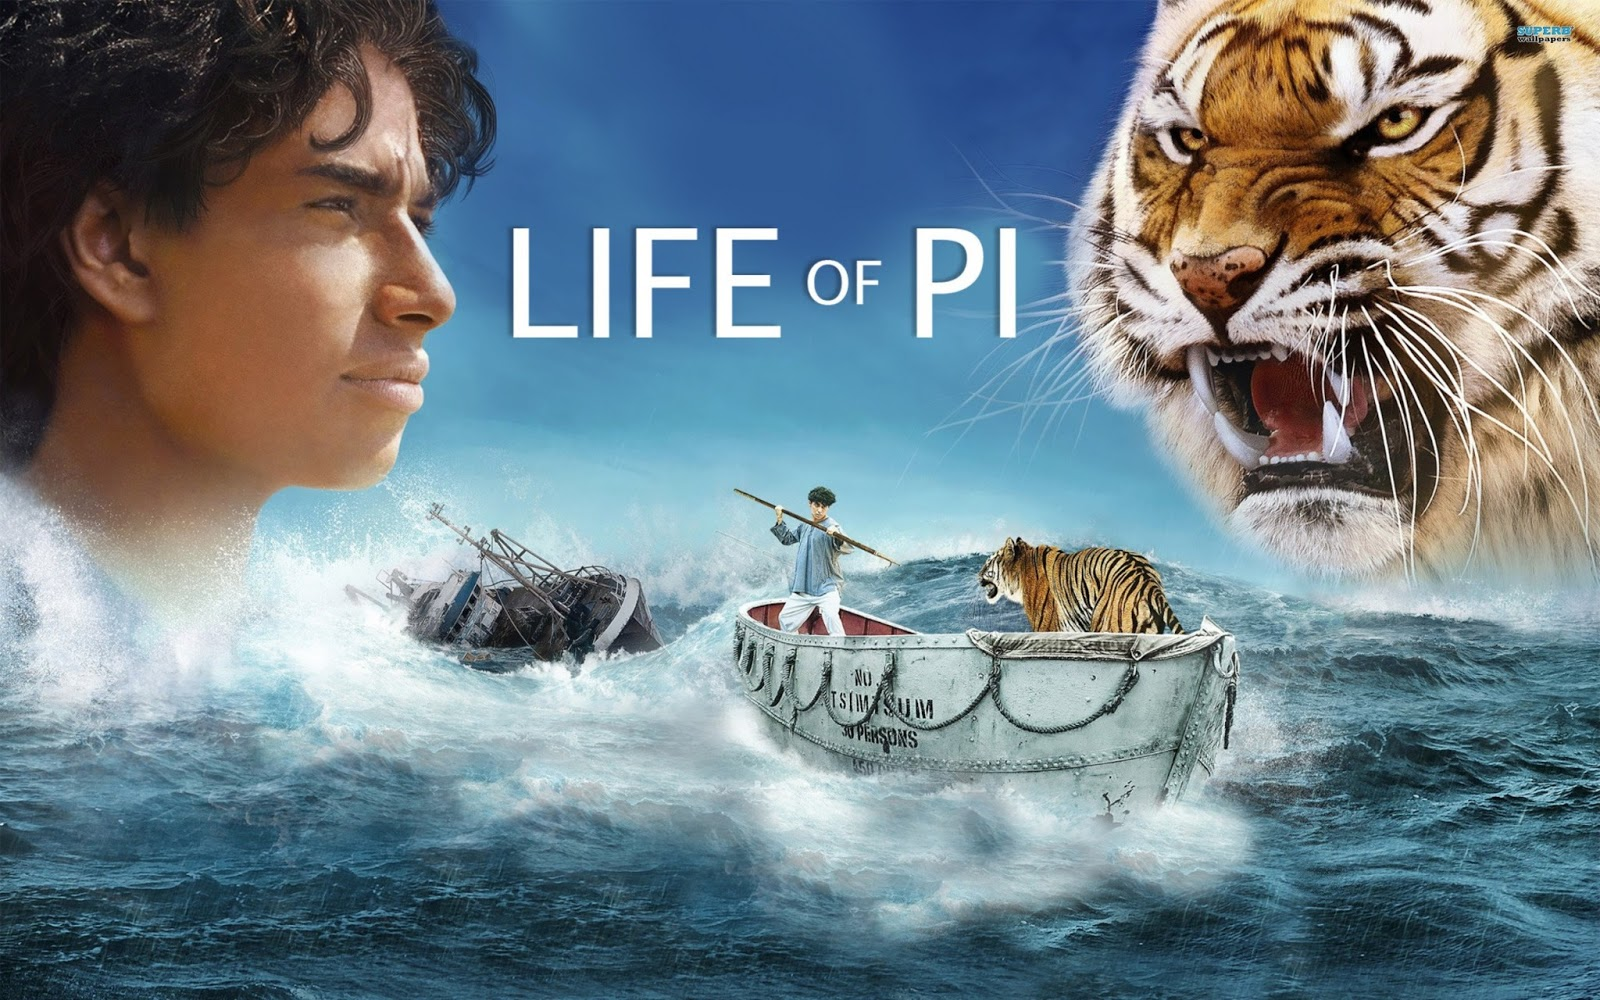 life of pi 2012 hindi dubbed movie moviez01